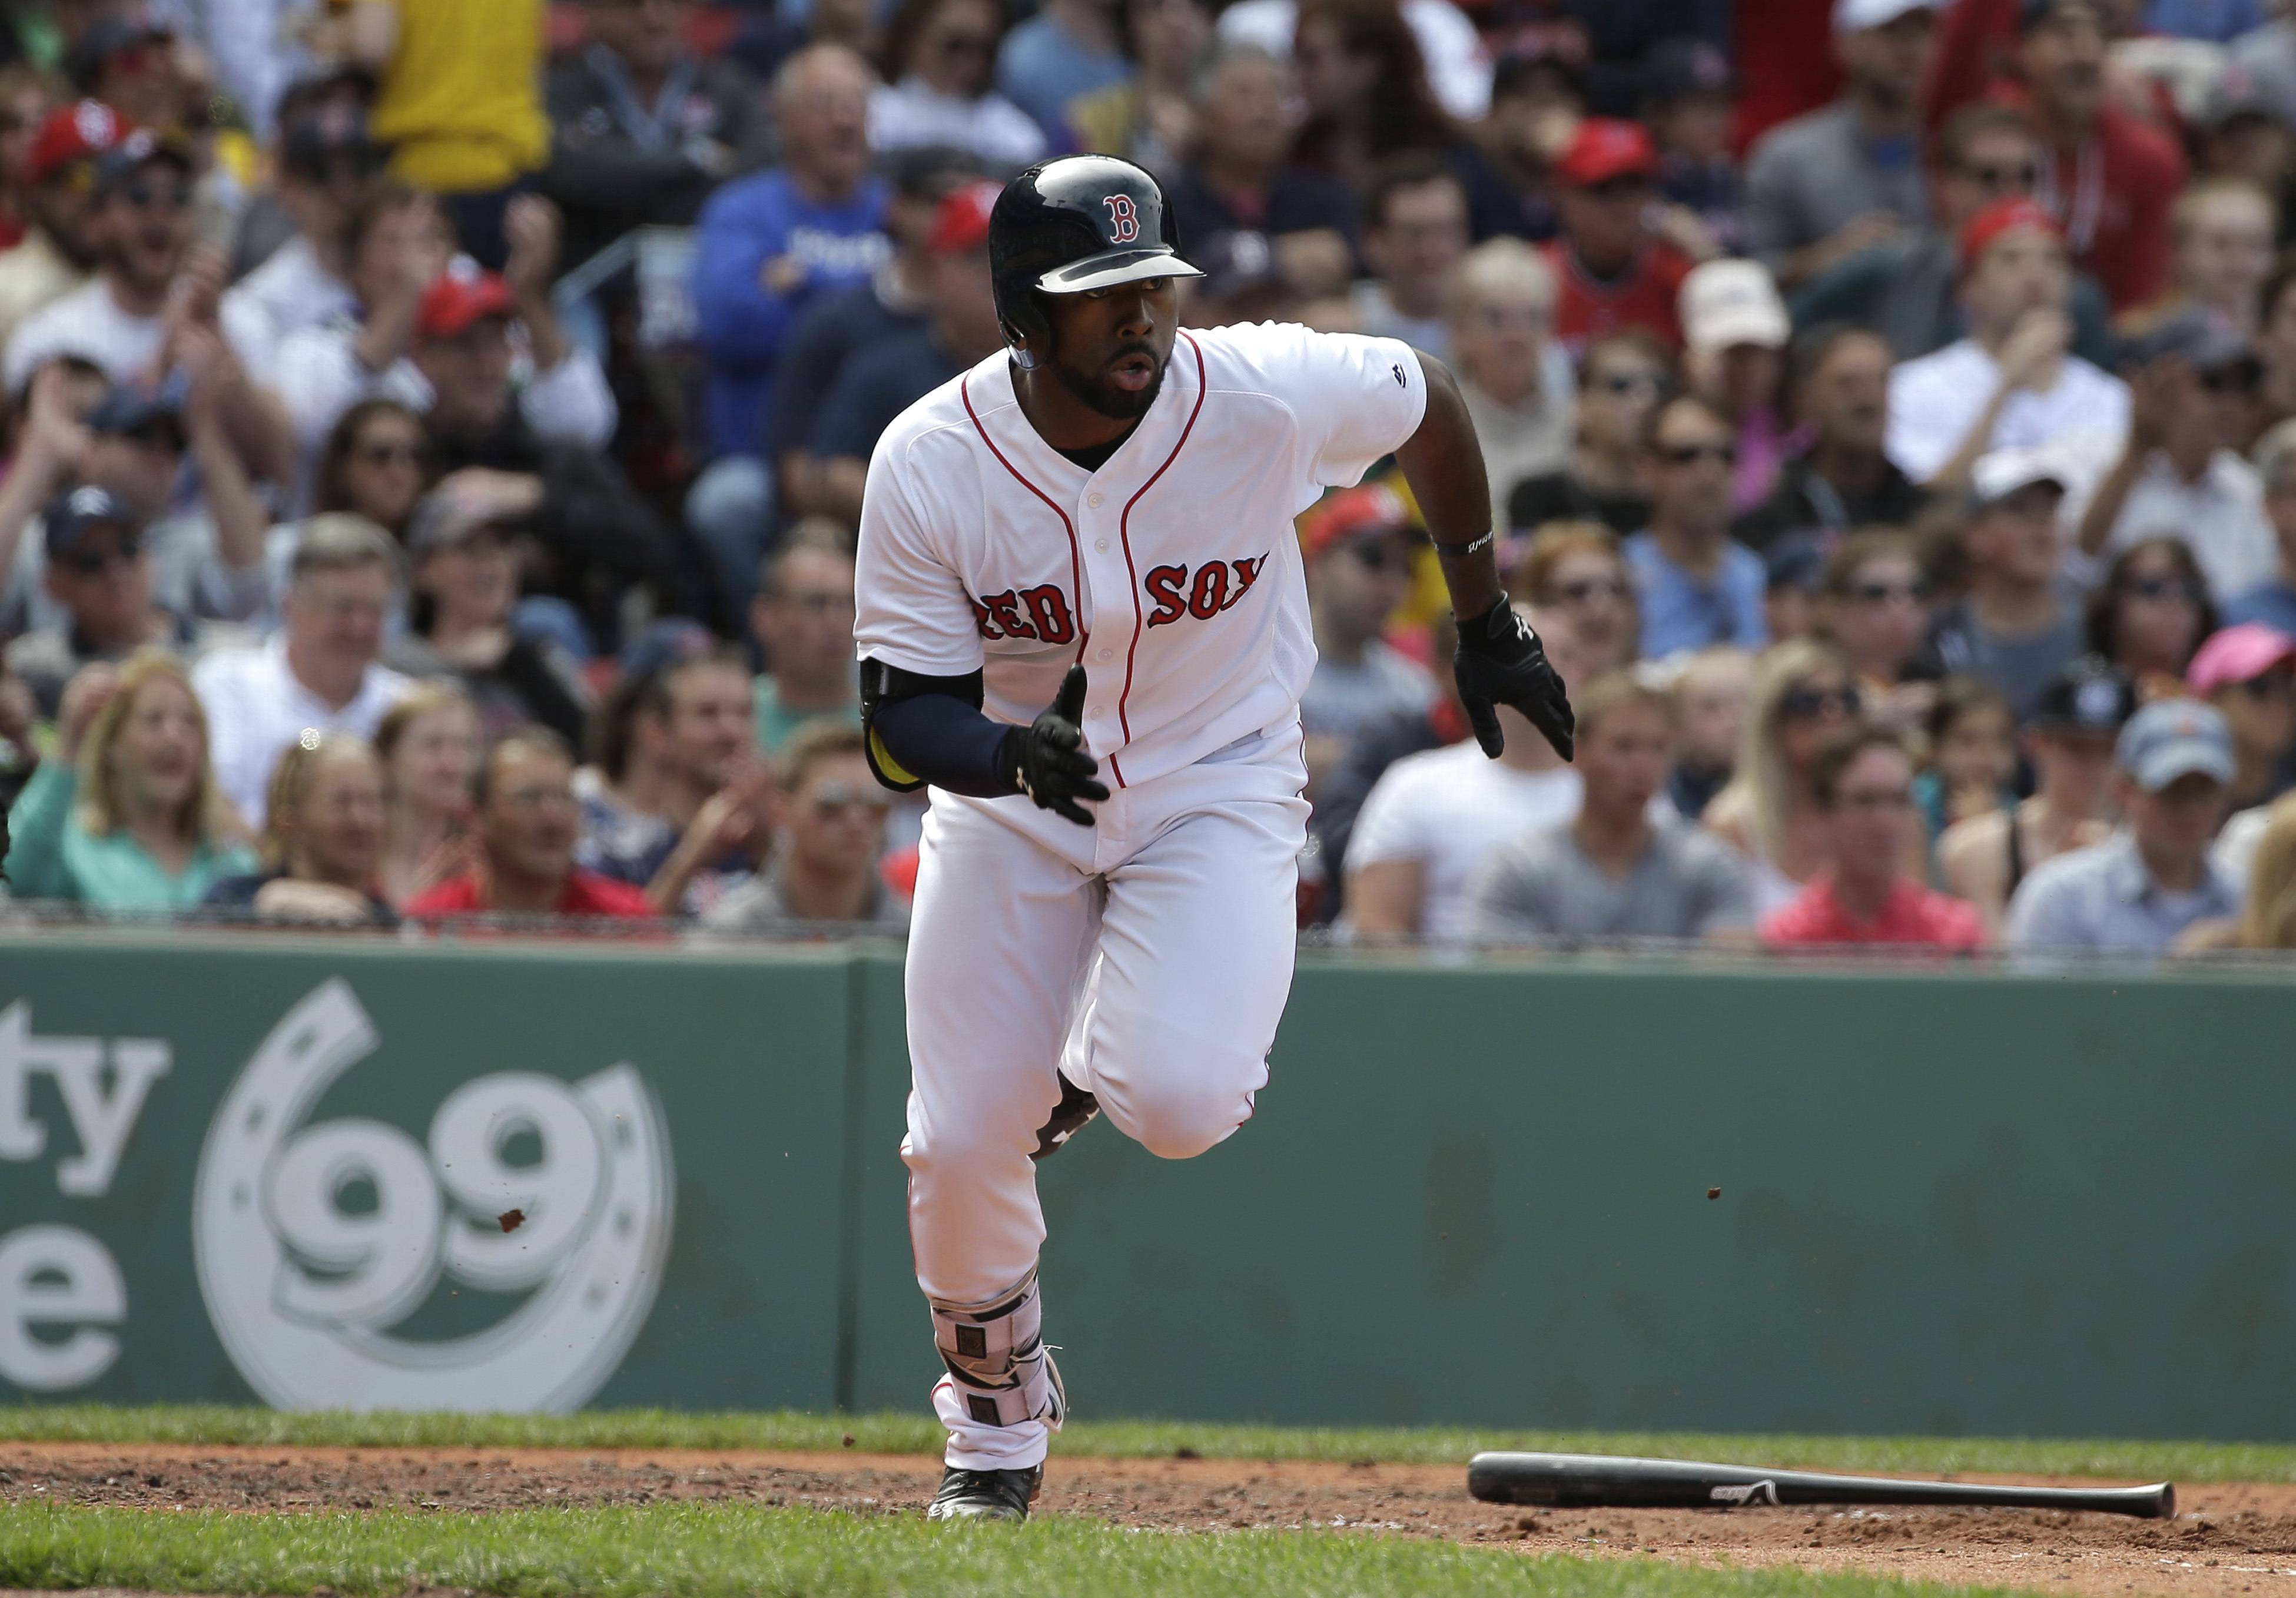 Boston Red Sox's Jackie Bradley Jr. runs toward first base as he singles off a pitch by Cleveland Indians' Danny Salazar in the fifth inning of a baseball game at Fenway Park, Sunday, May 22, 2016, in Boston. (AP Photo/Steven Senne)